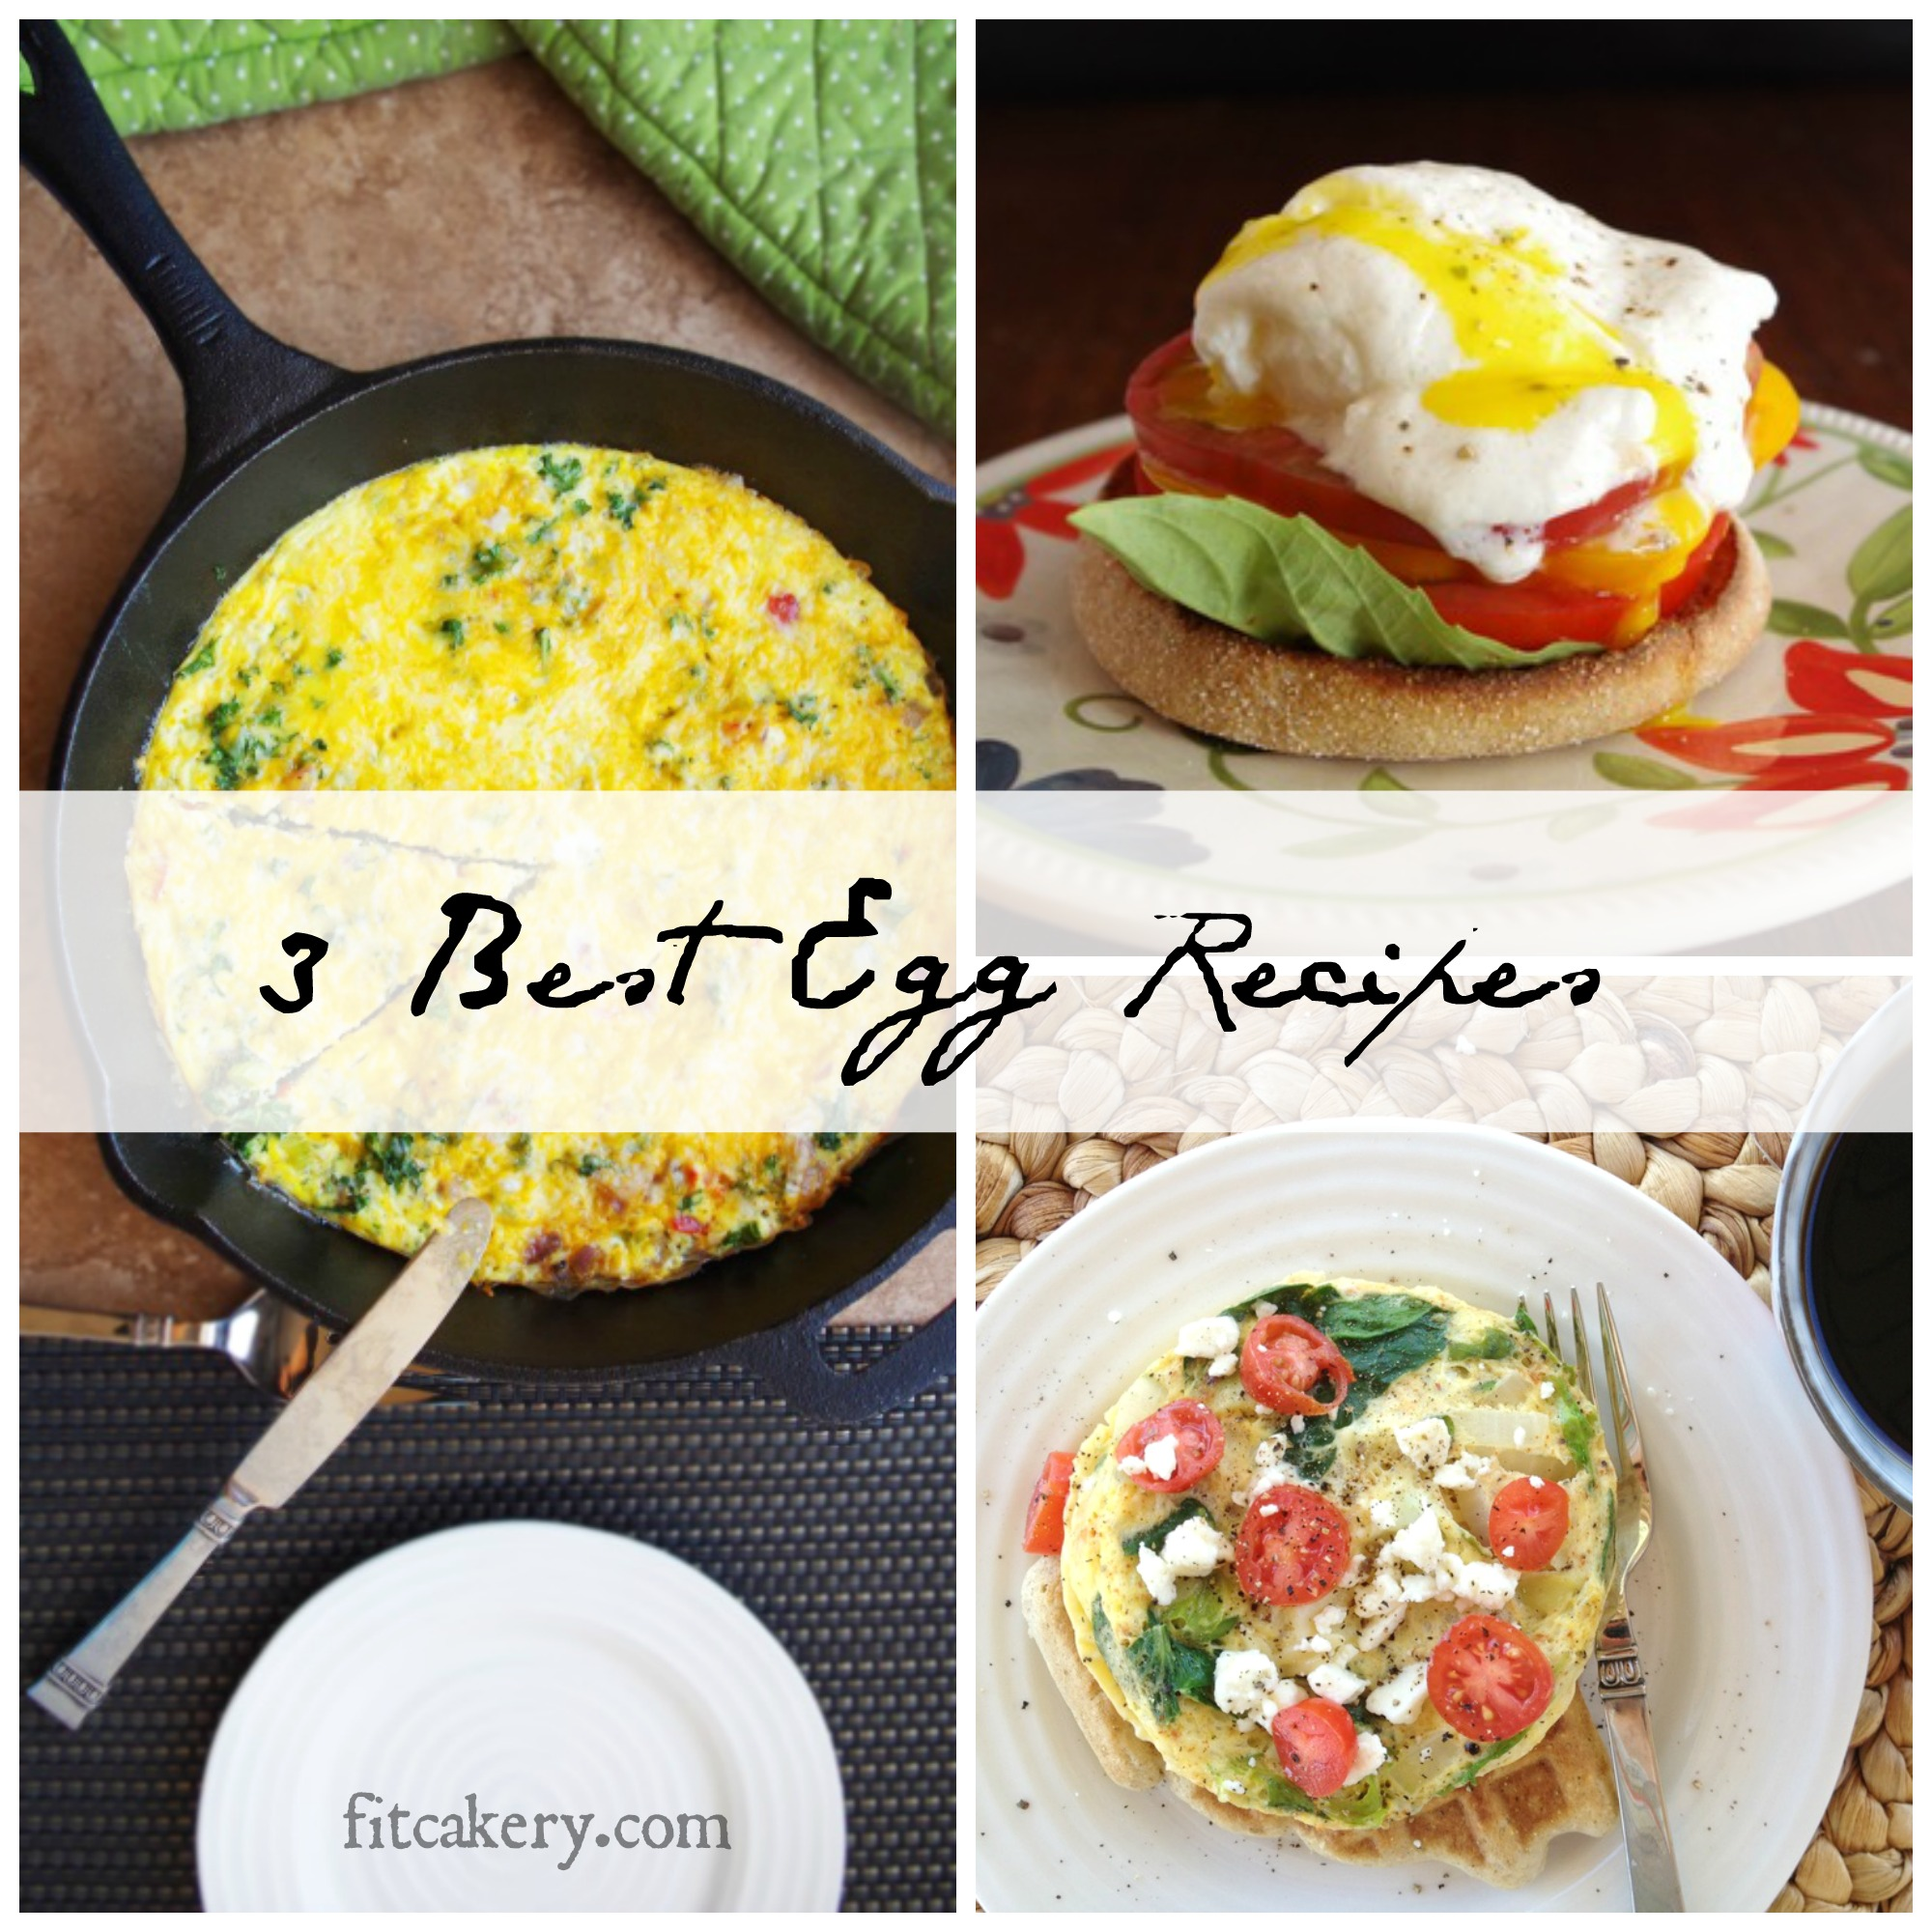 3 best egg recipes.jpg